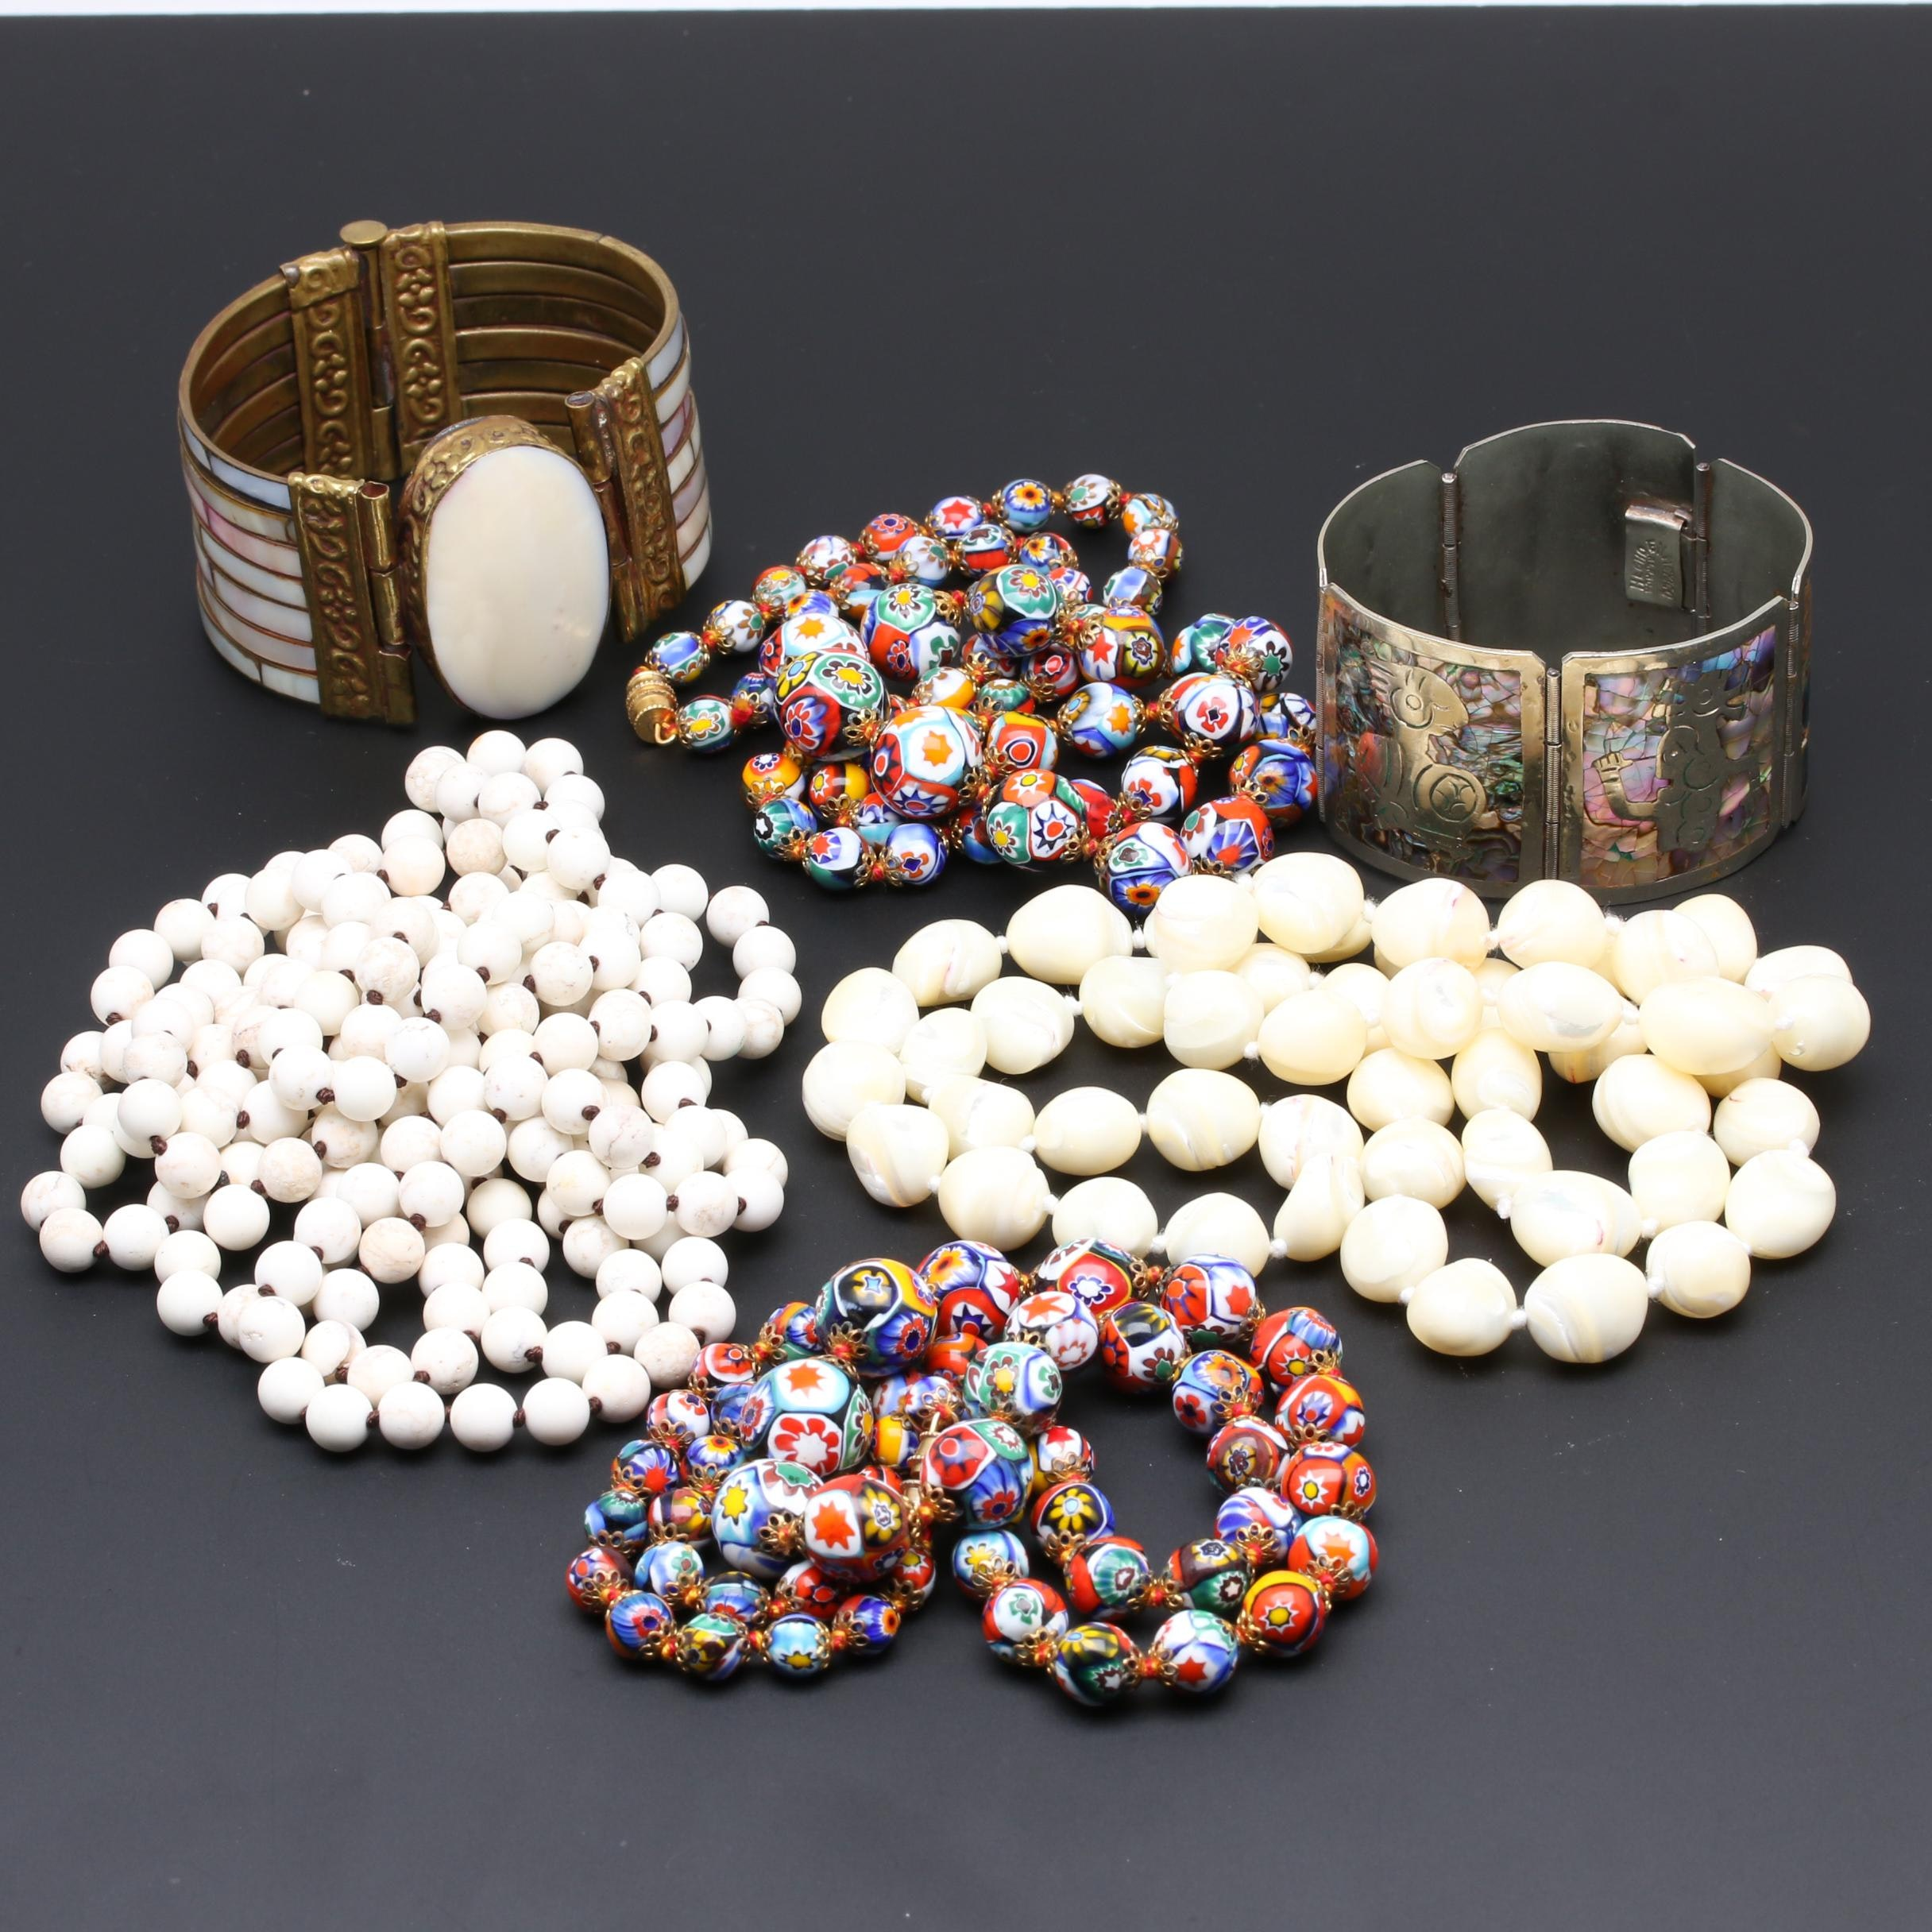 Assortment of Jewelry Including Abalone and Millefiori Glass